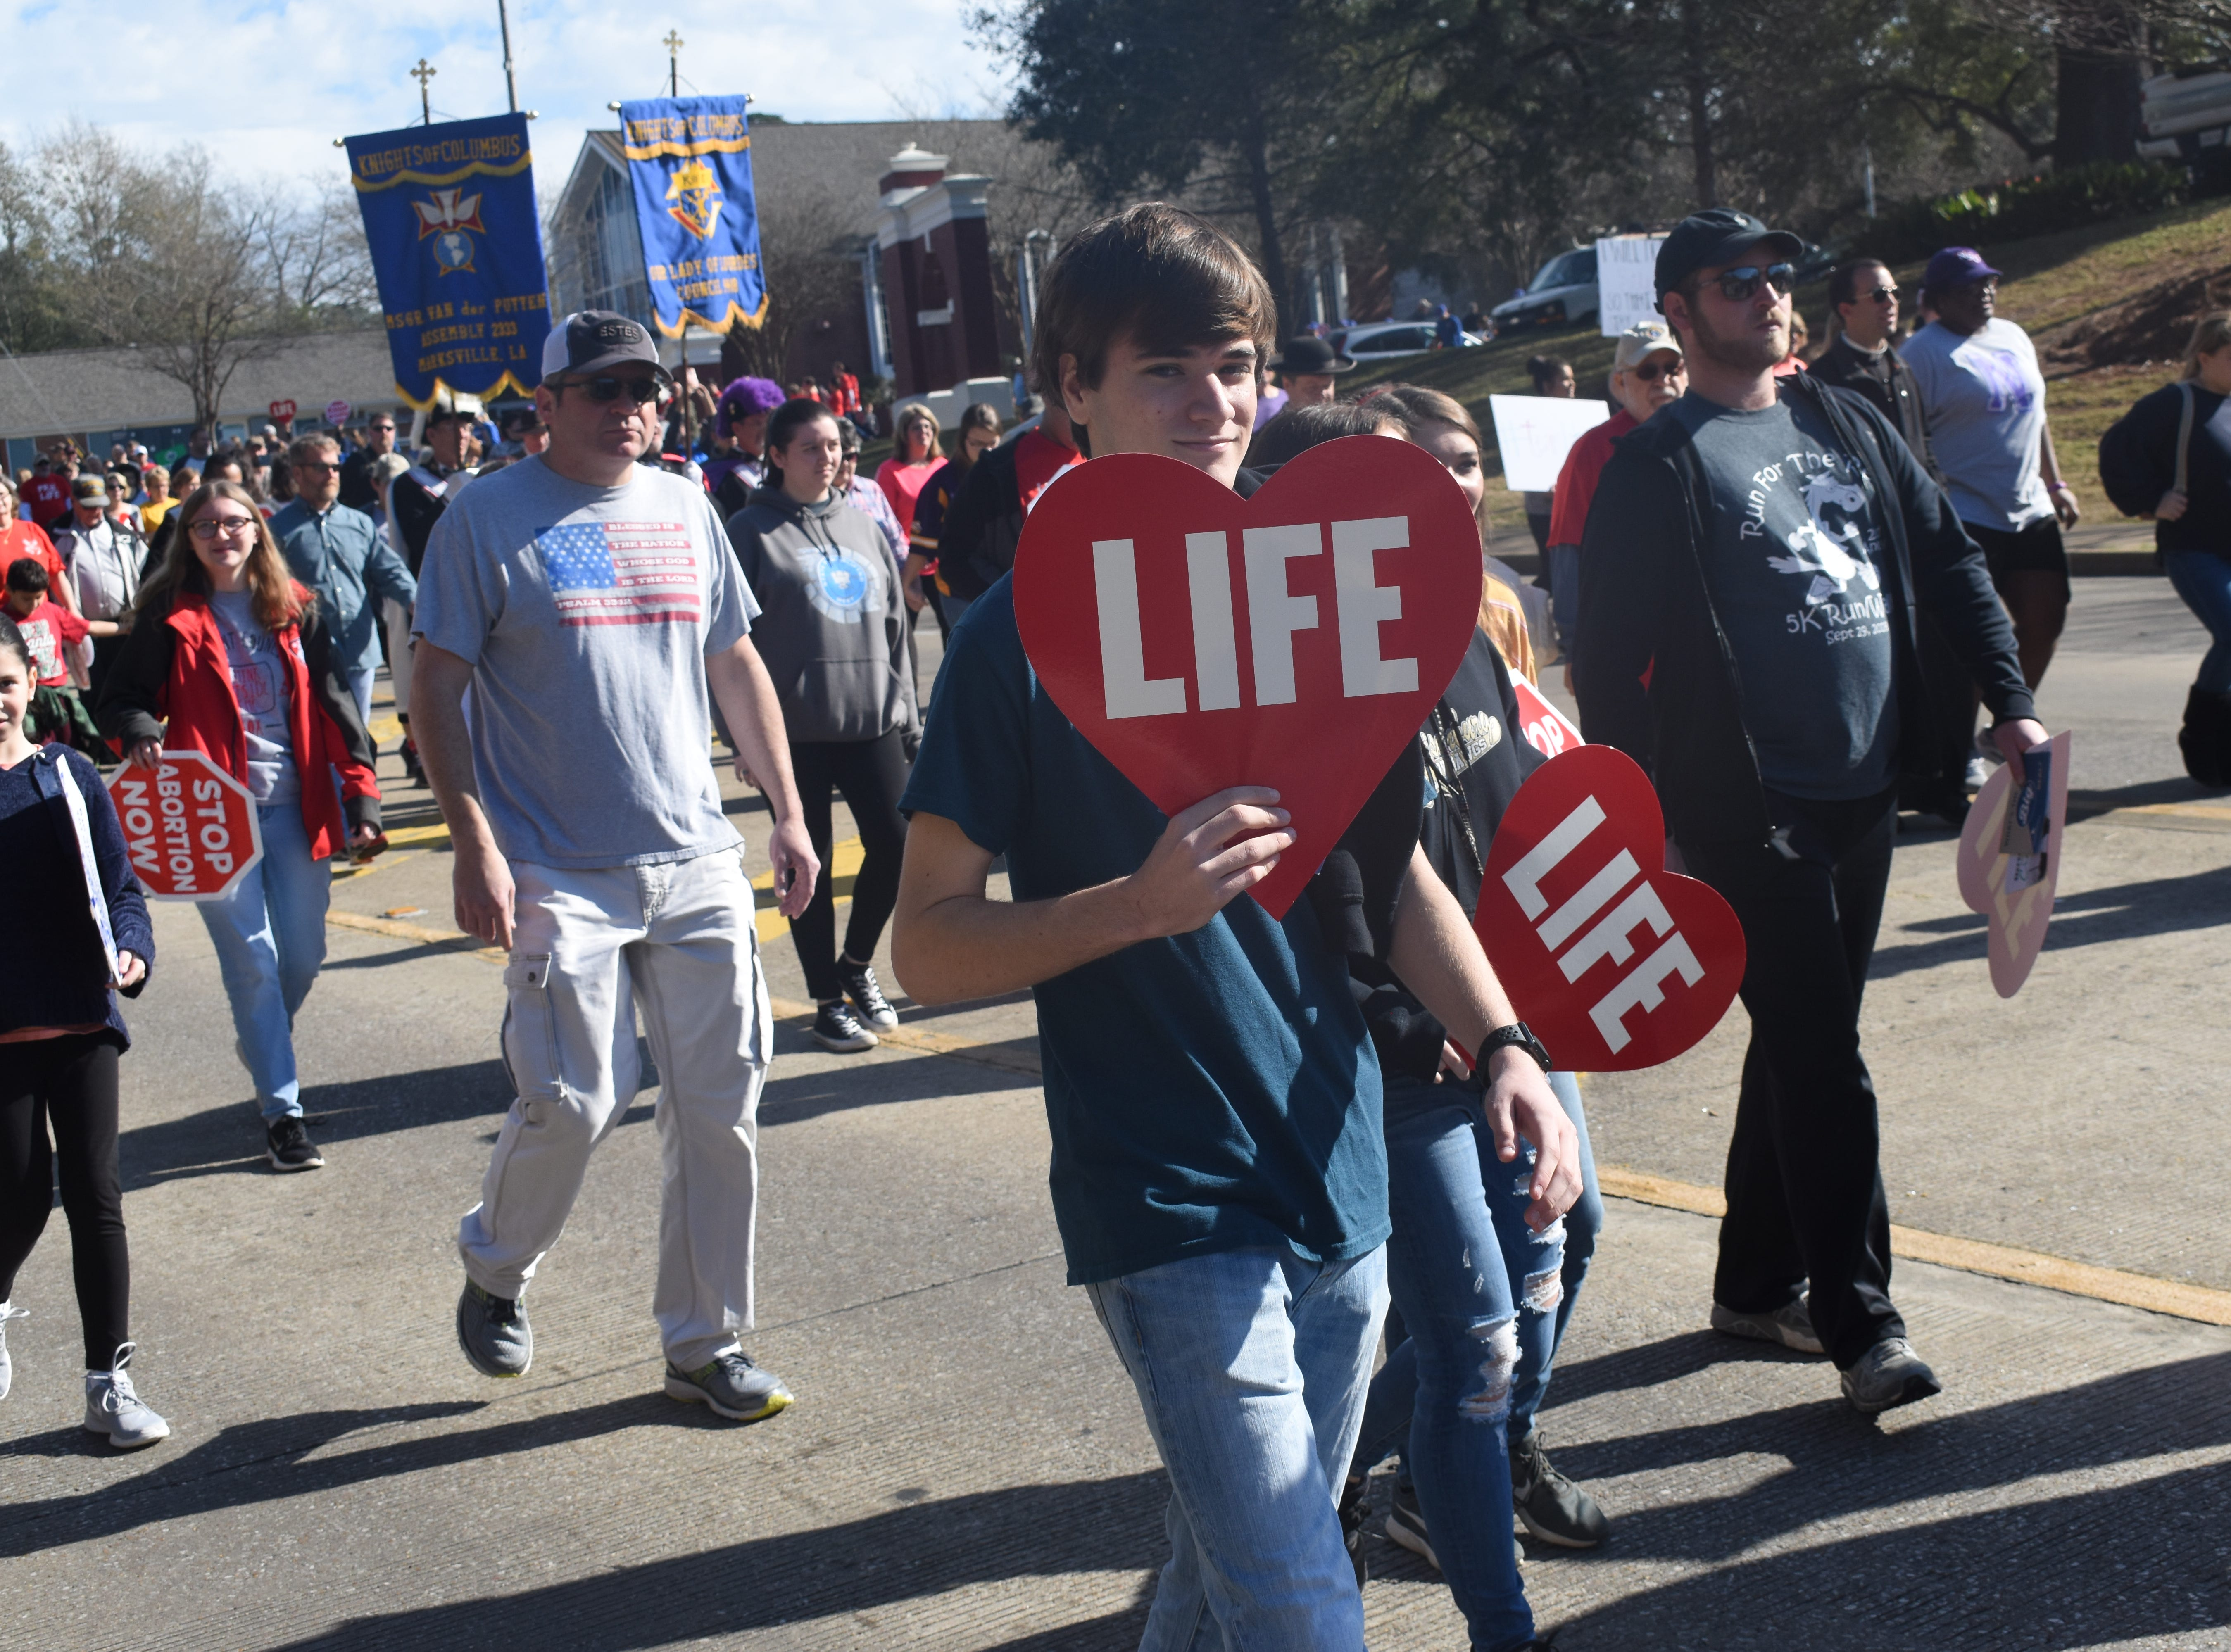 The Cenla March for Life, hosted by Louisiana Right to Life, was held Saturday, Feb. 2, 2019. The march started at Louisiana College in Pineville and ended at the amphitheater in downtown Alexandria. About 3,000 participated in the march. The event was sponsored by Louisiana Right to Life, Louisiana College, Louisiana Baptist Convention, Catholic Diocese of Alexandria, United Pentecostal Church of Louisiana, Louisiana Family Forum, the Knights of Columbus and Concerned Women for America. The purpose of the march, according to the Website www.prolifelouisiana.org is to have an abortion-free Louisiana.